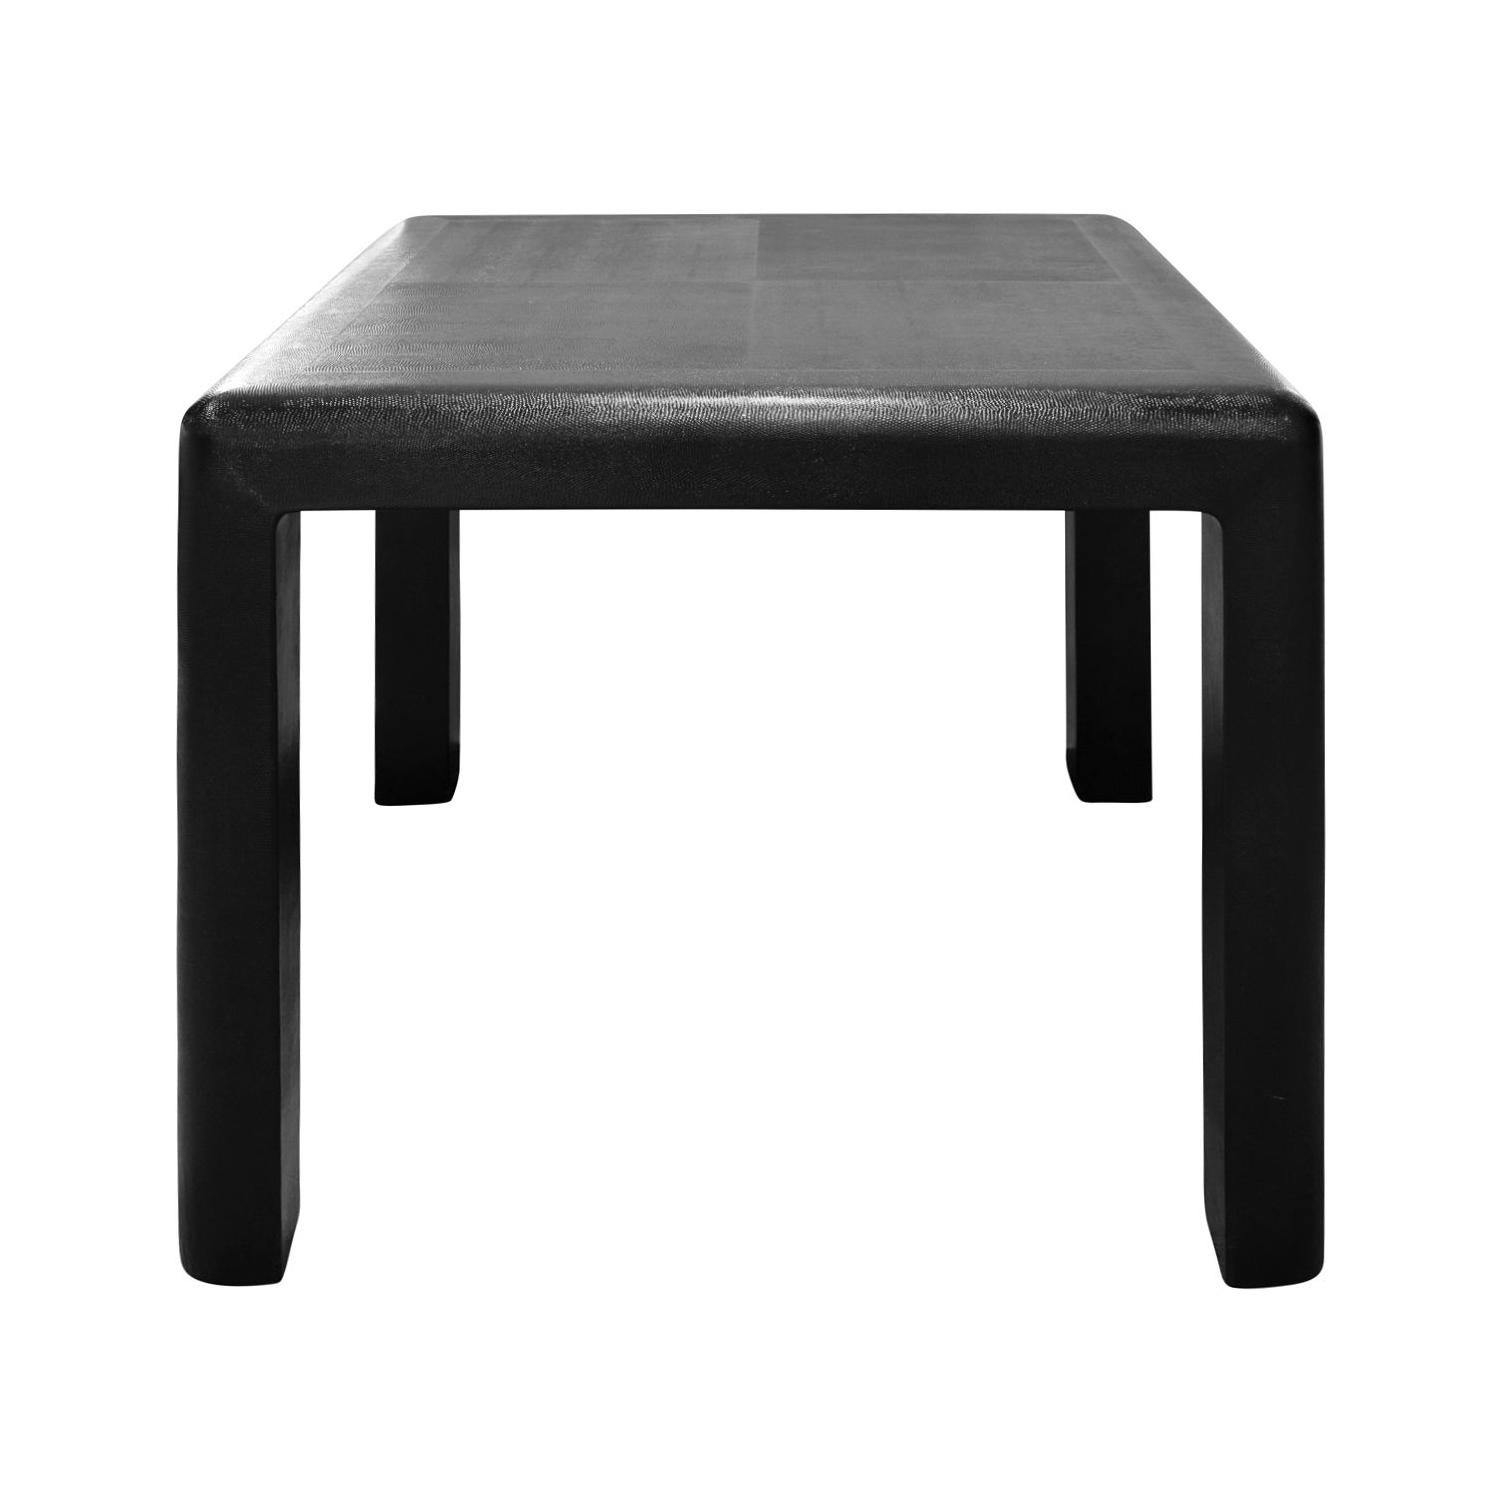 Karl Springer Petit Game Table in Embossed Lizard Leather, 1987, 'Signed'